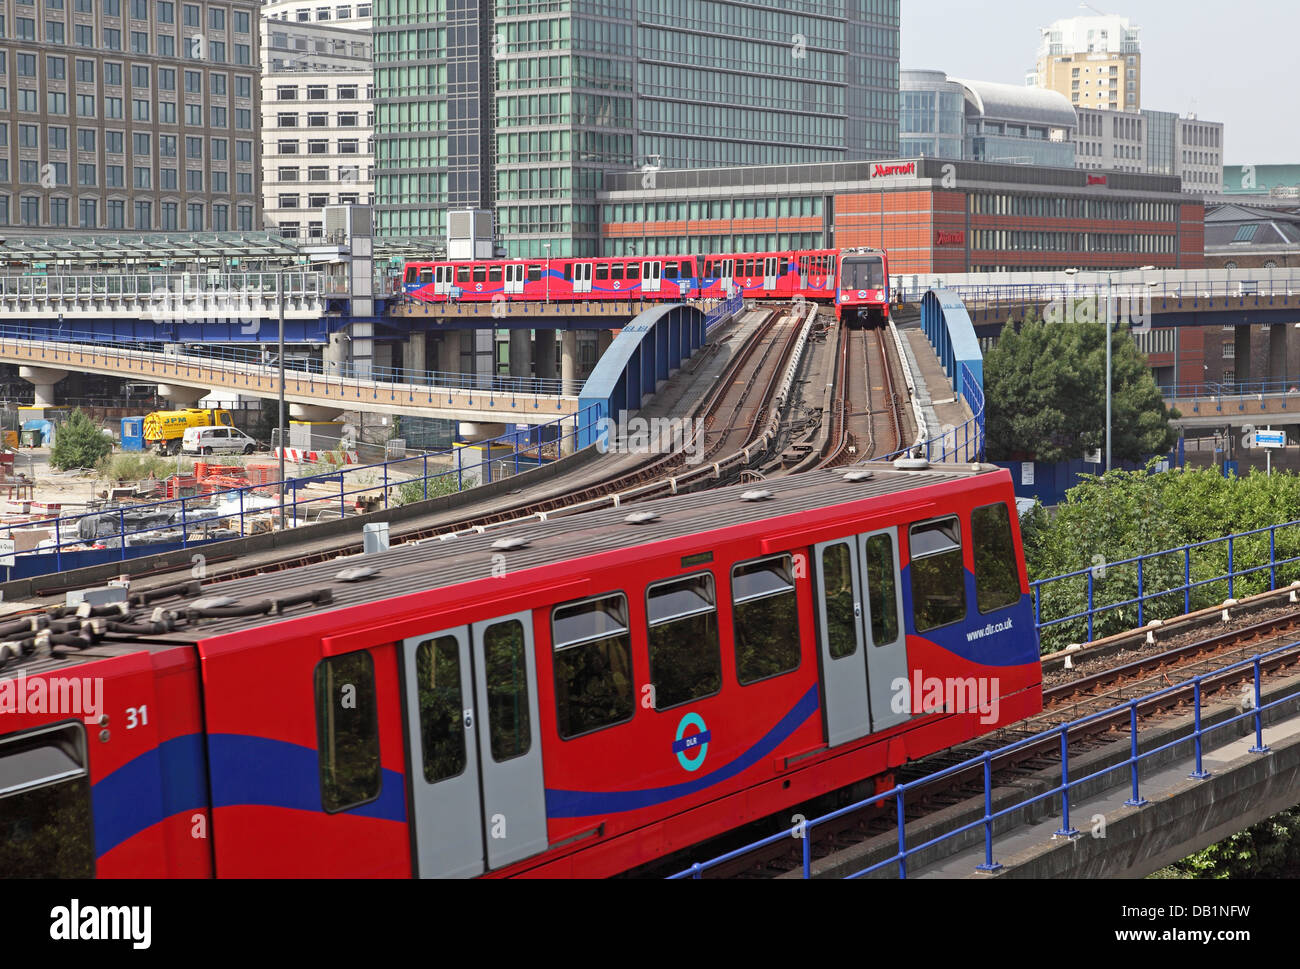 London Docklands Light Railway trains pass near West India Quay station - Stock Image